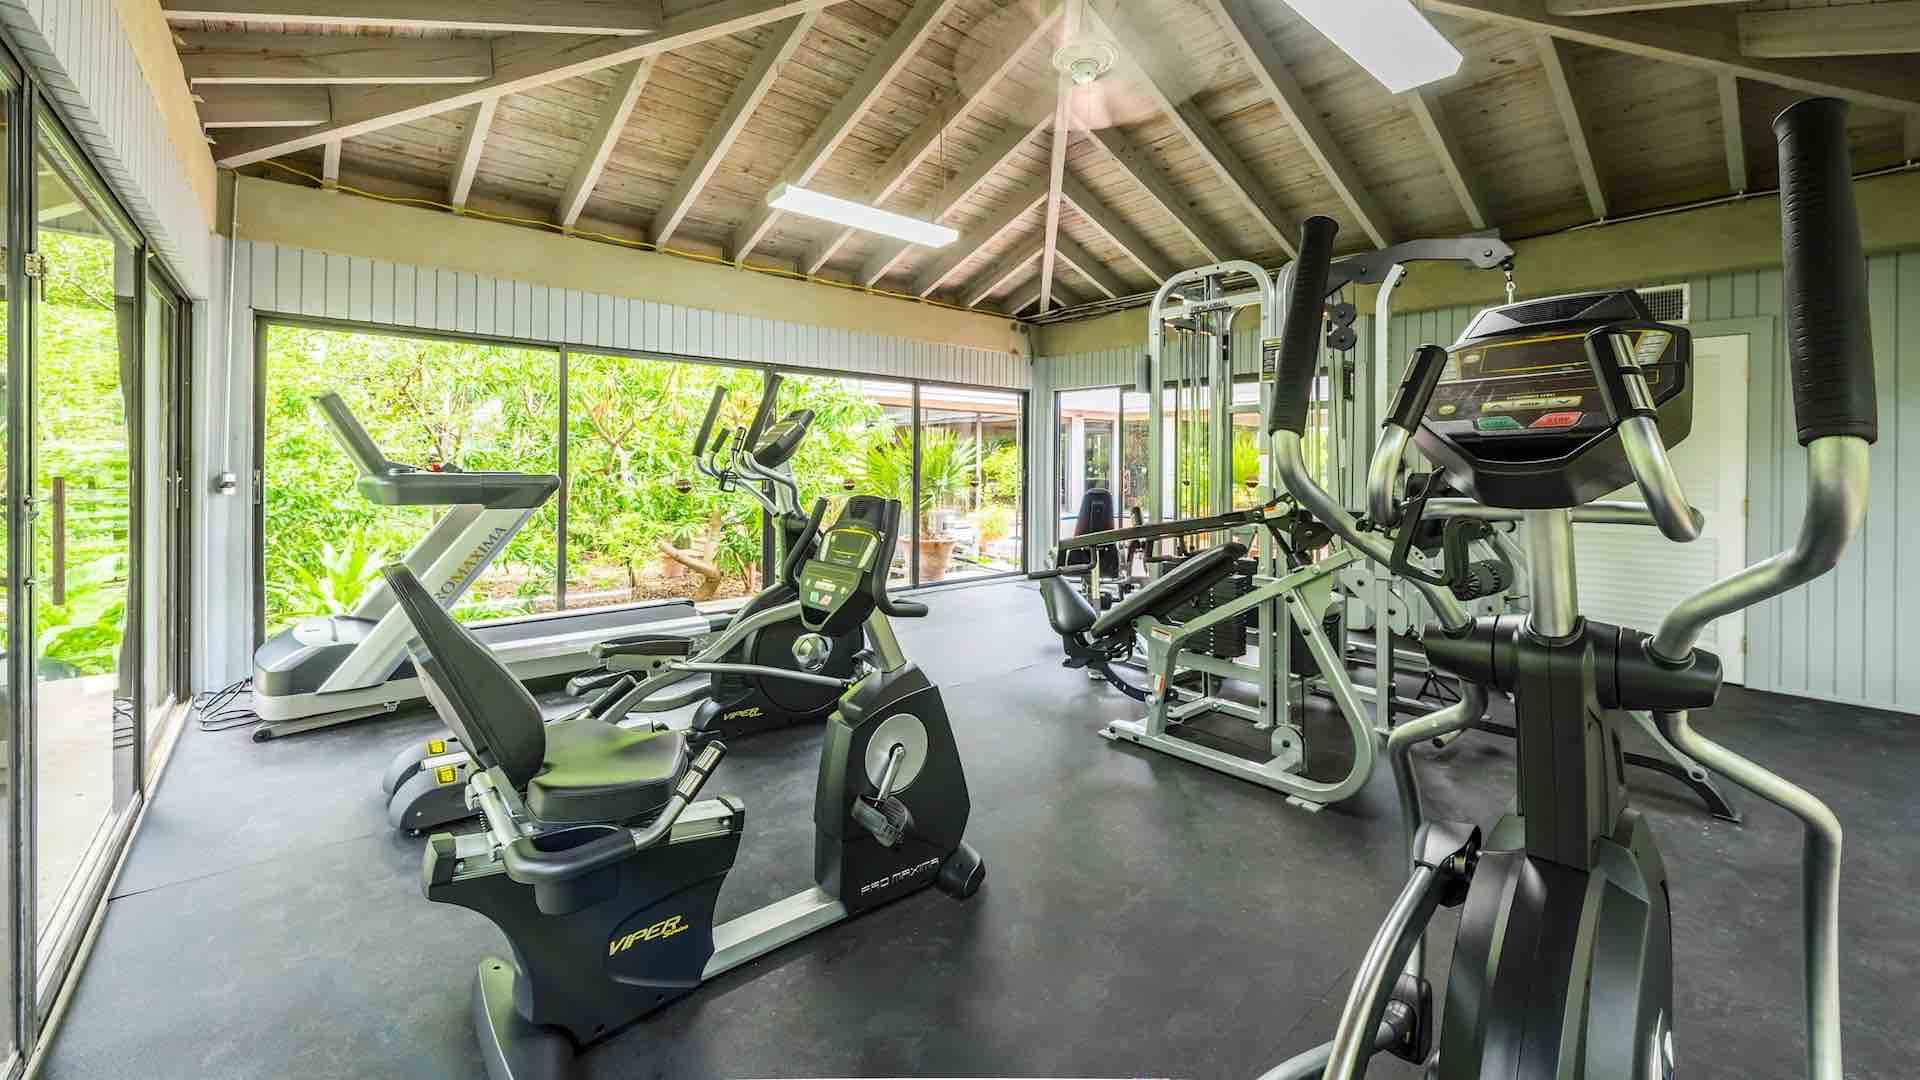 Enjoy a nice work out during your vacation in paradise...